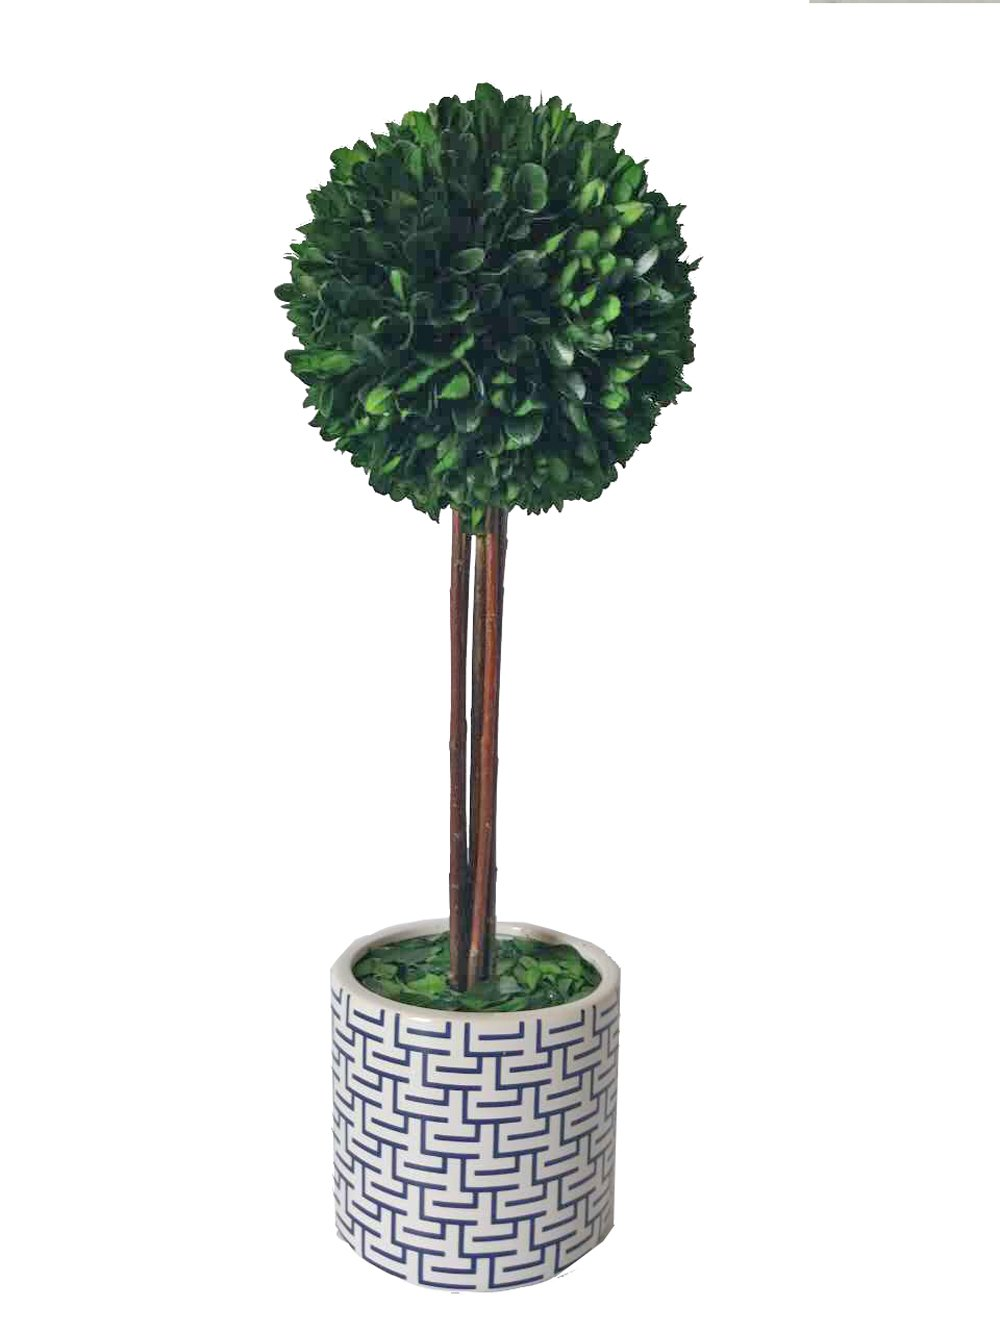 Galt International Ball Topiary Plant with Twig Stem in White and Navy Blue Ceramic Pot, 18-Inches Naturally Preserved Real Boxwood by Galt International